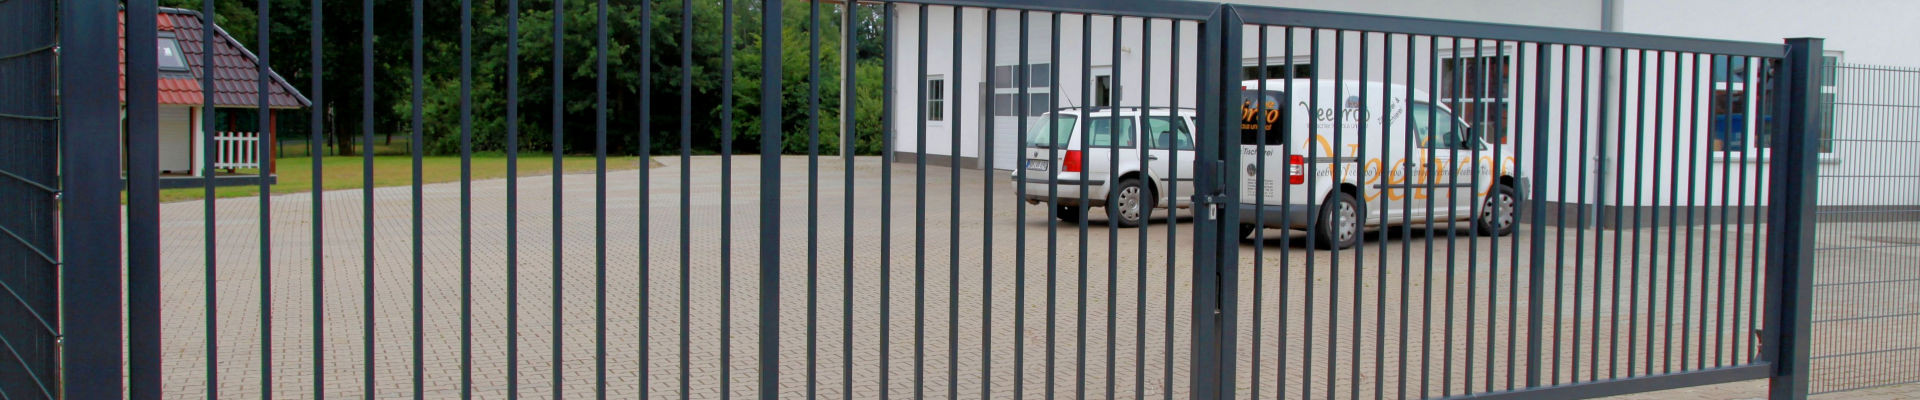 INOVA Swing Gate Industrial